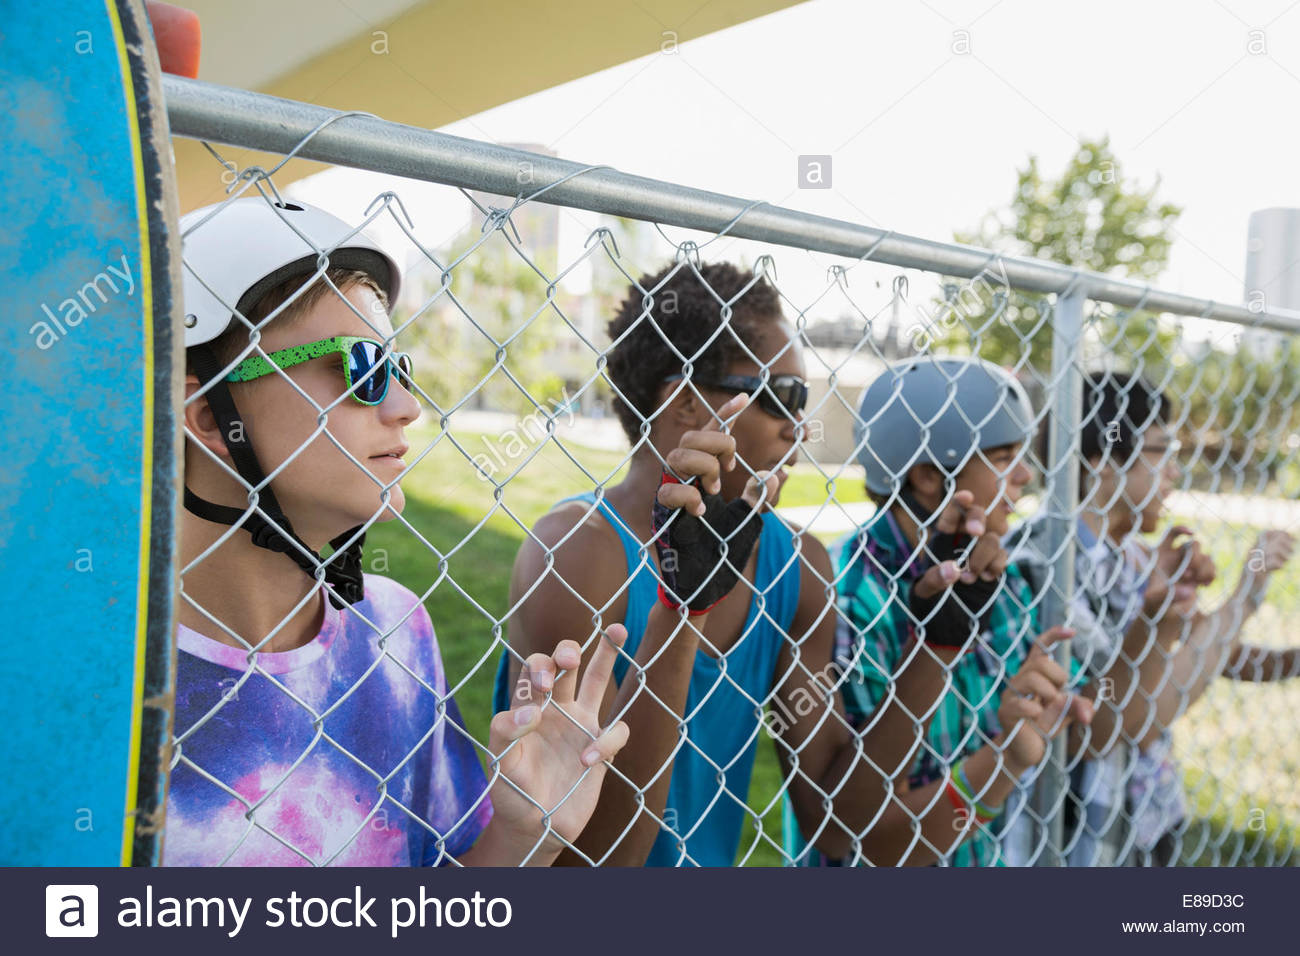 Portrait of teenage boys with skateboard at fence - Stock Image